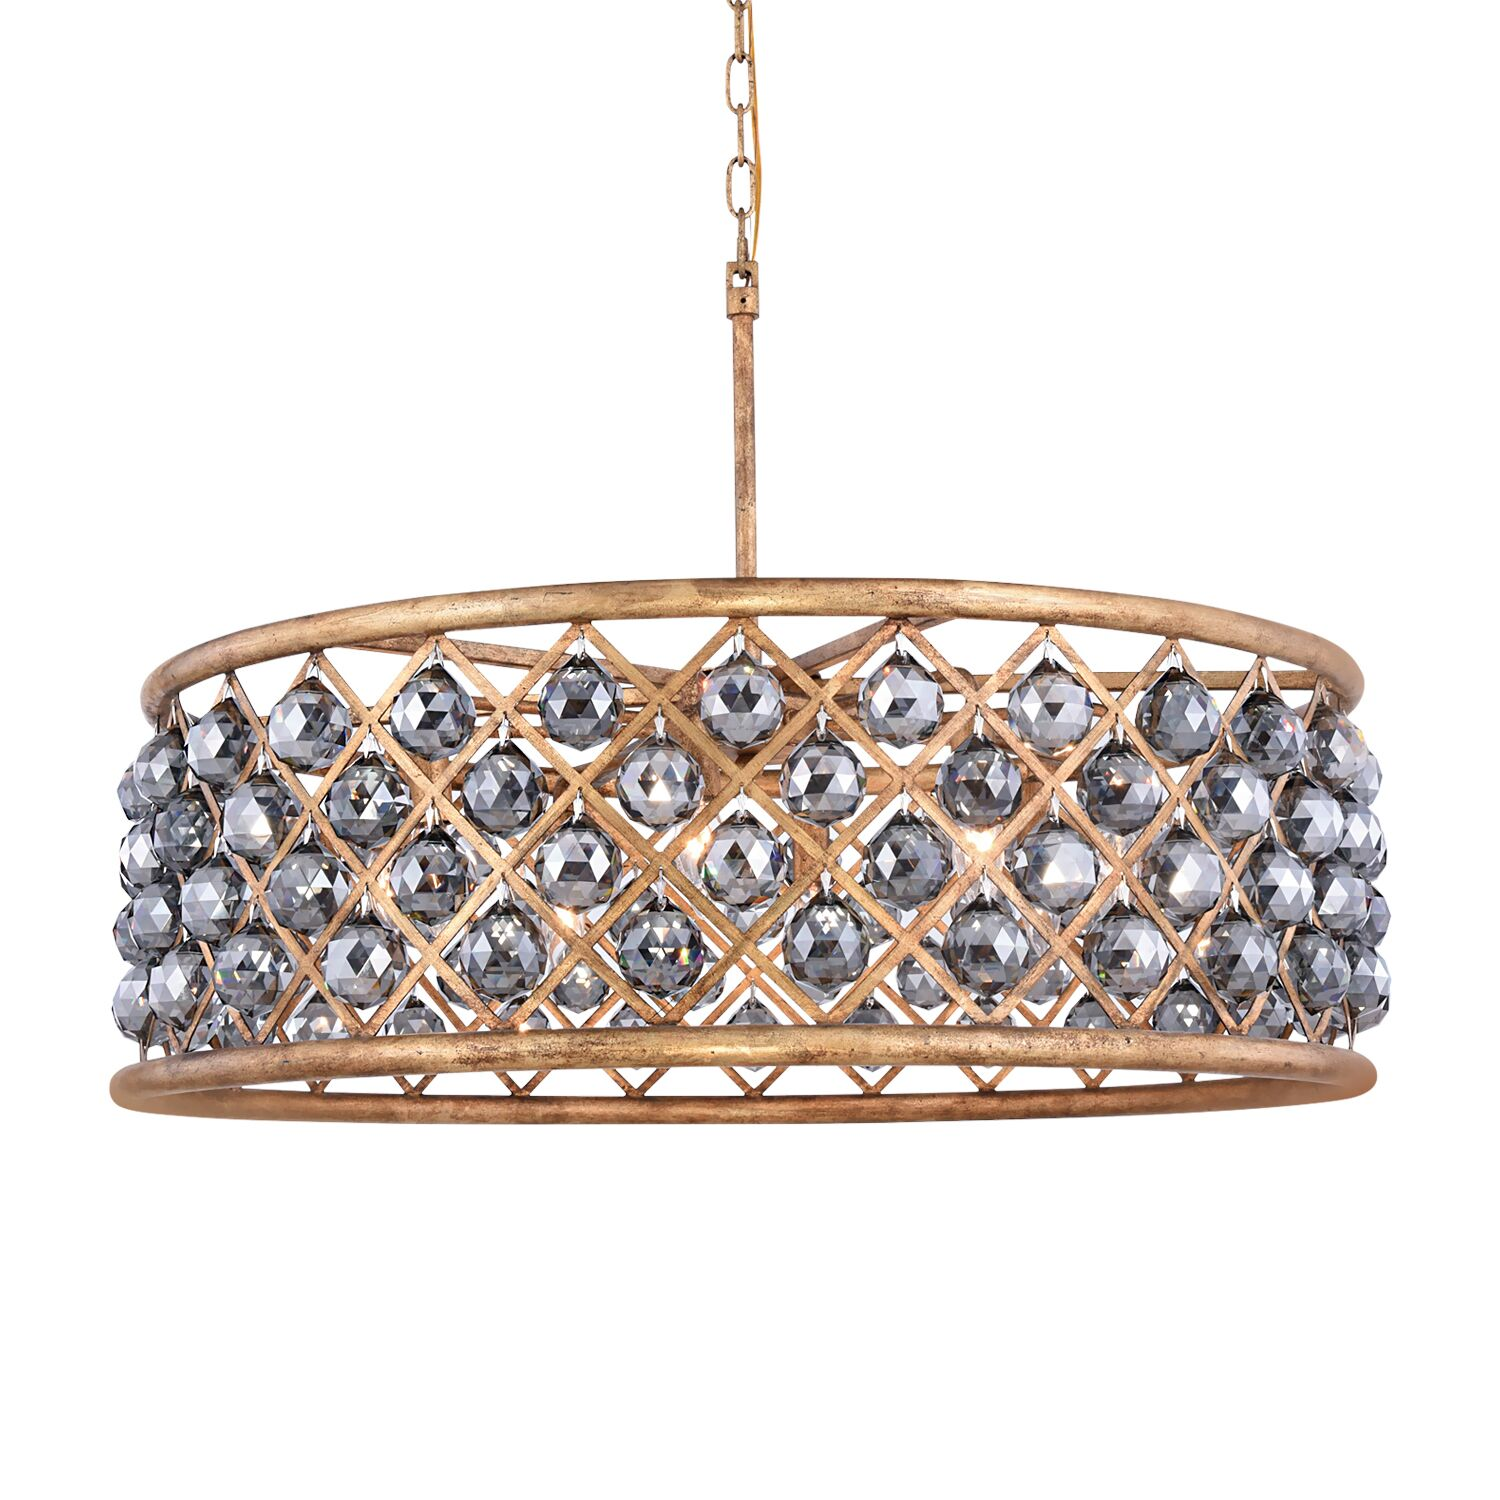 Lulsgate 8-Light Chandelier Finish: Gold, Bulb Type: Incandescent, Shade Color: Smoke